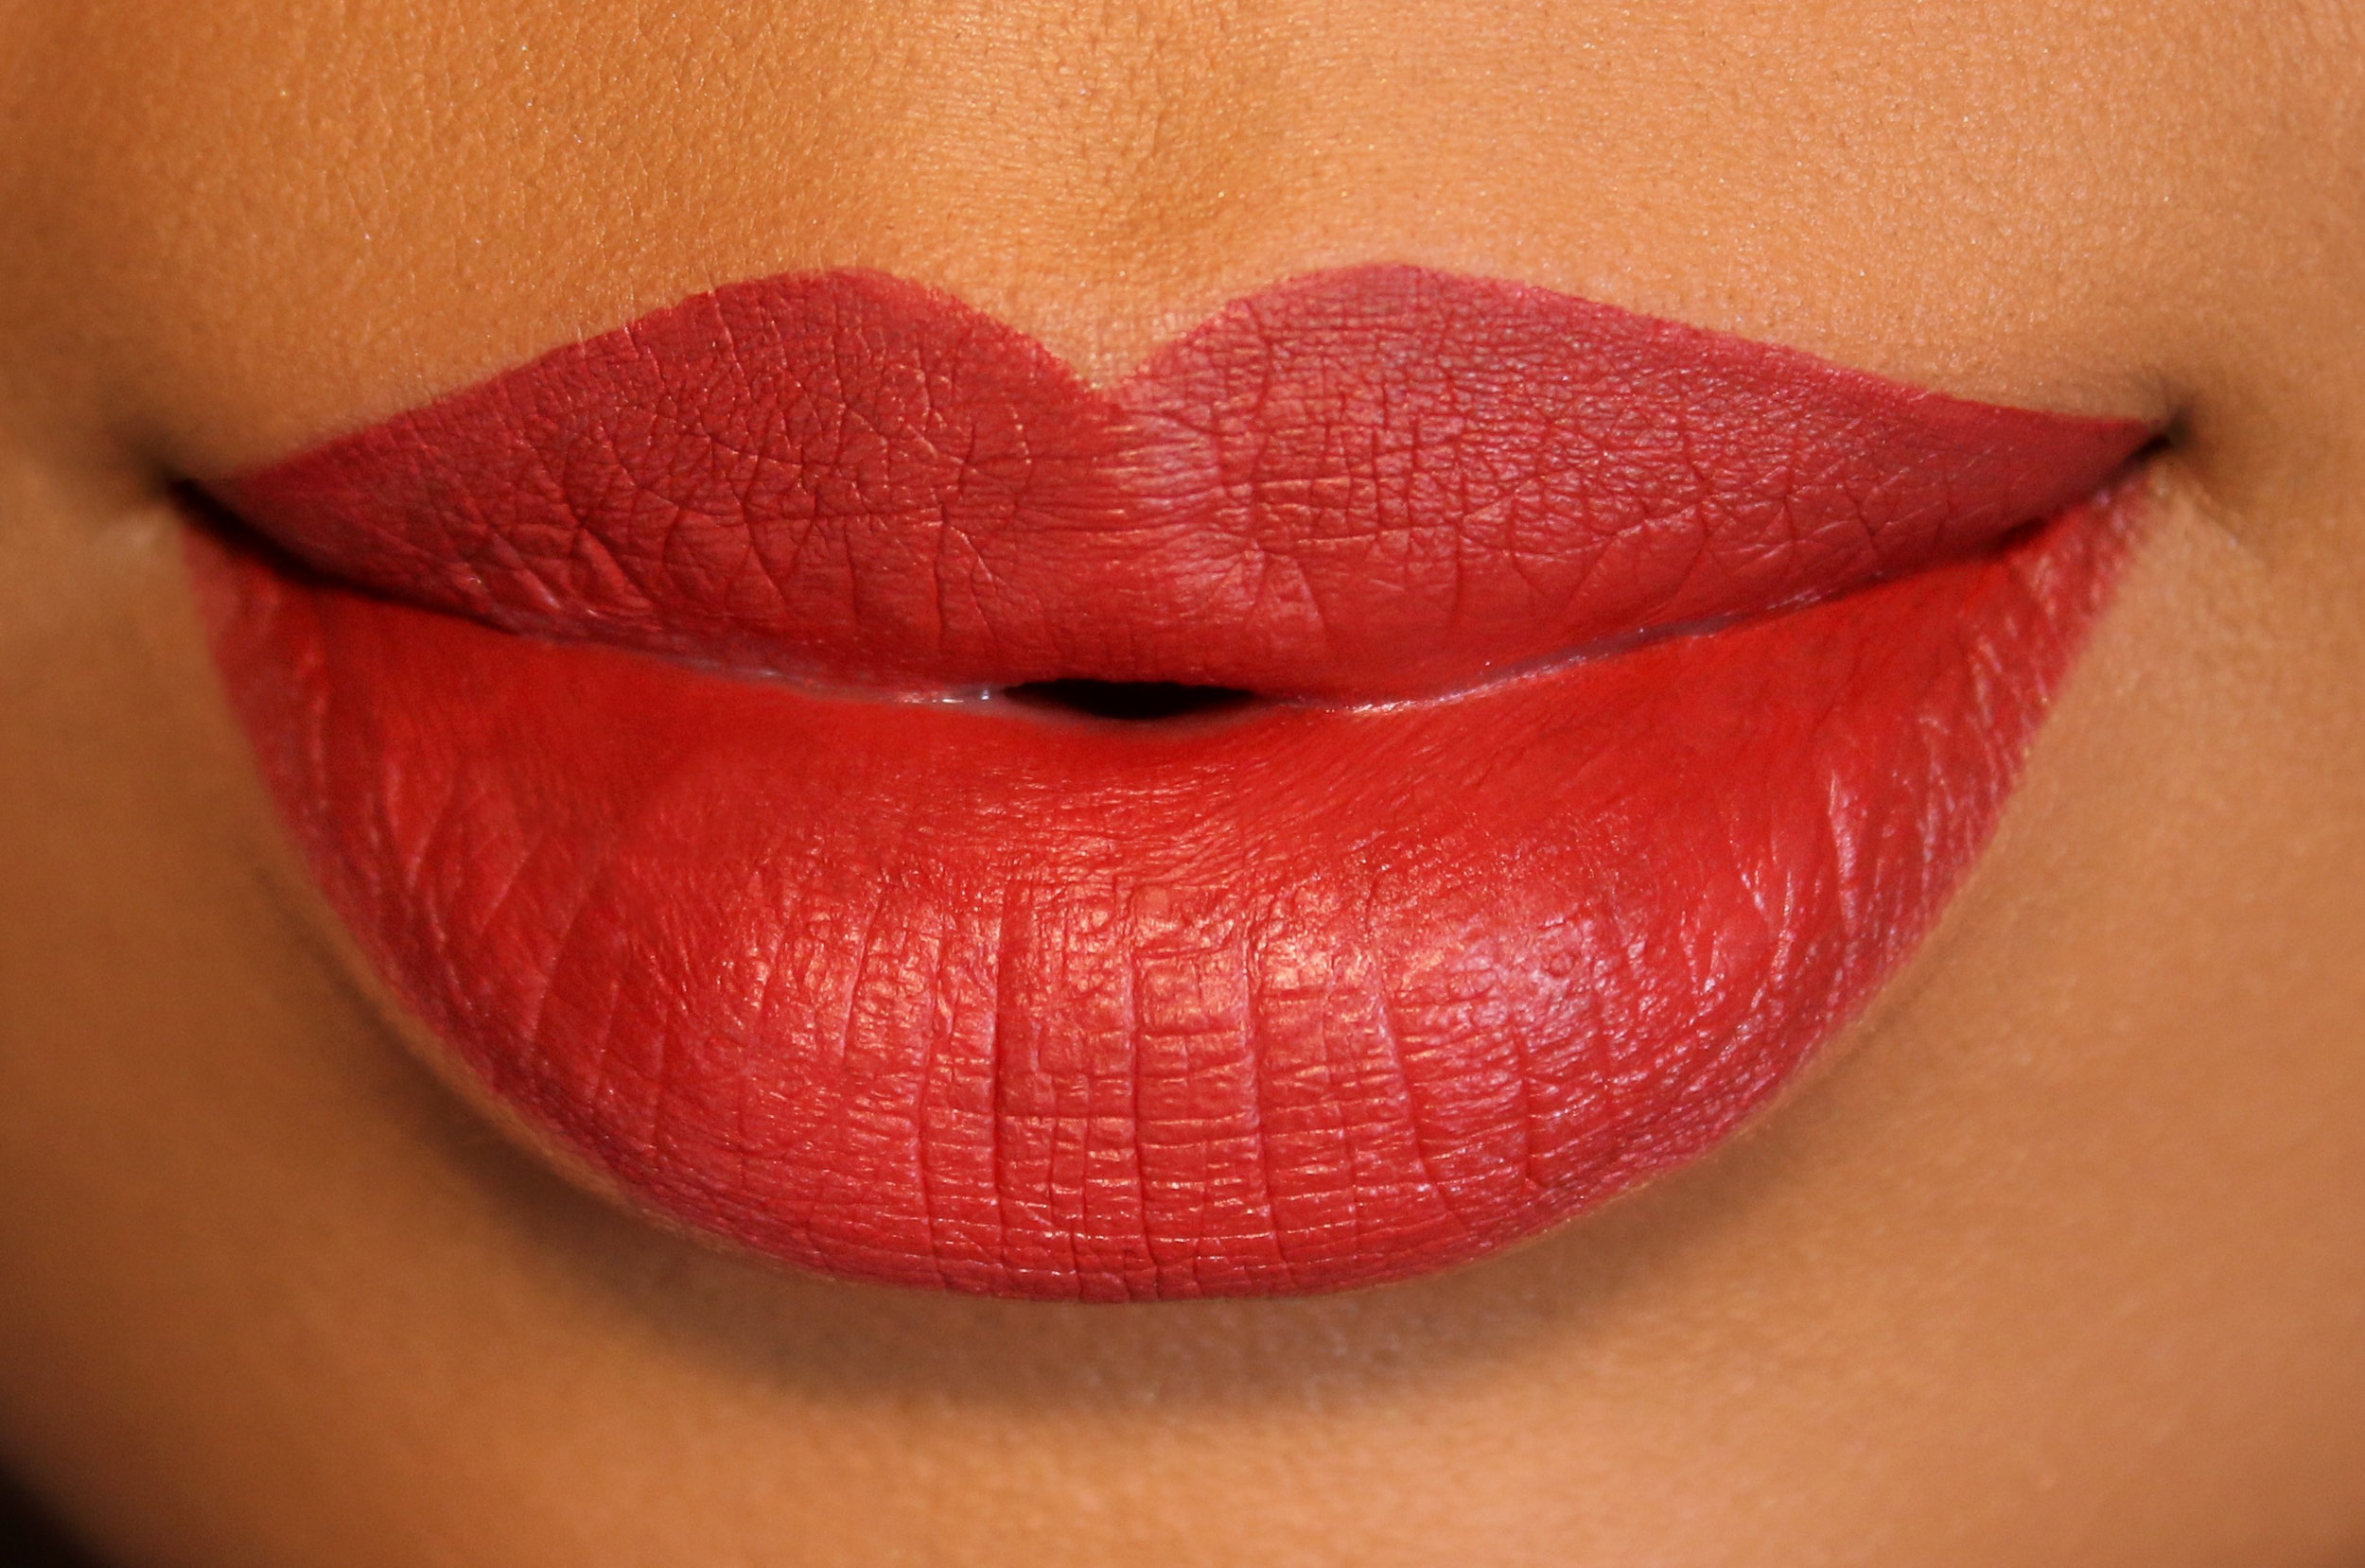 KAT VON D Project Chimps Candy Coated Closets Contrast Use This.jpg